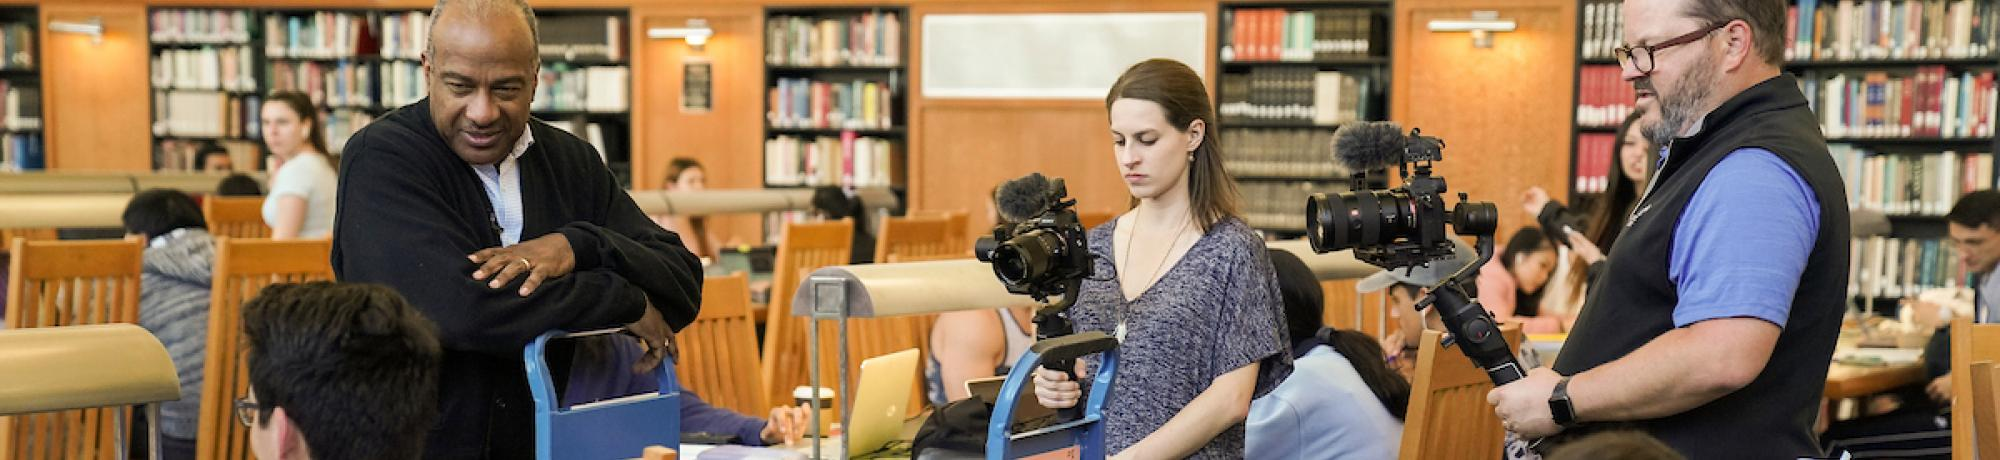 Two video producers filming a conversation in a library